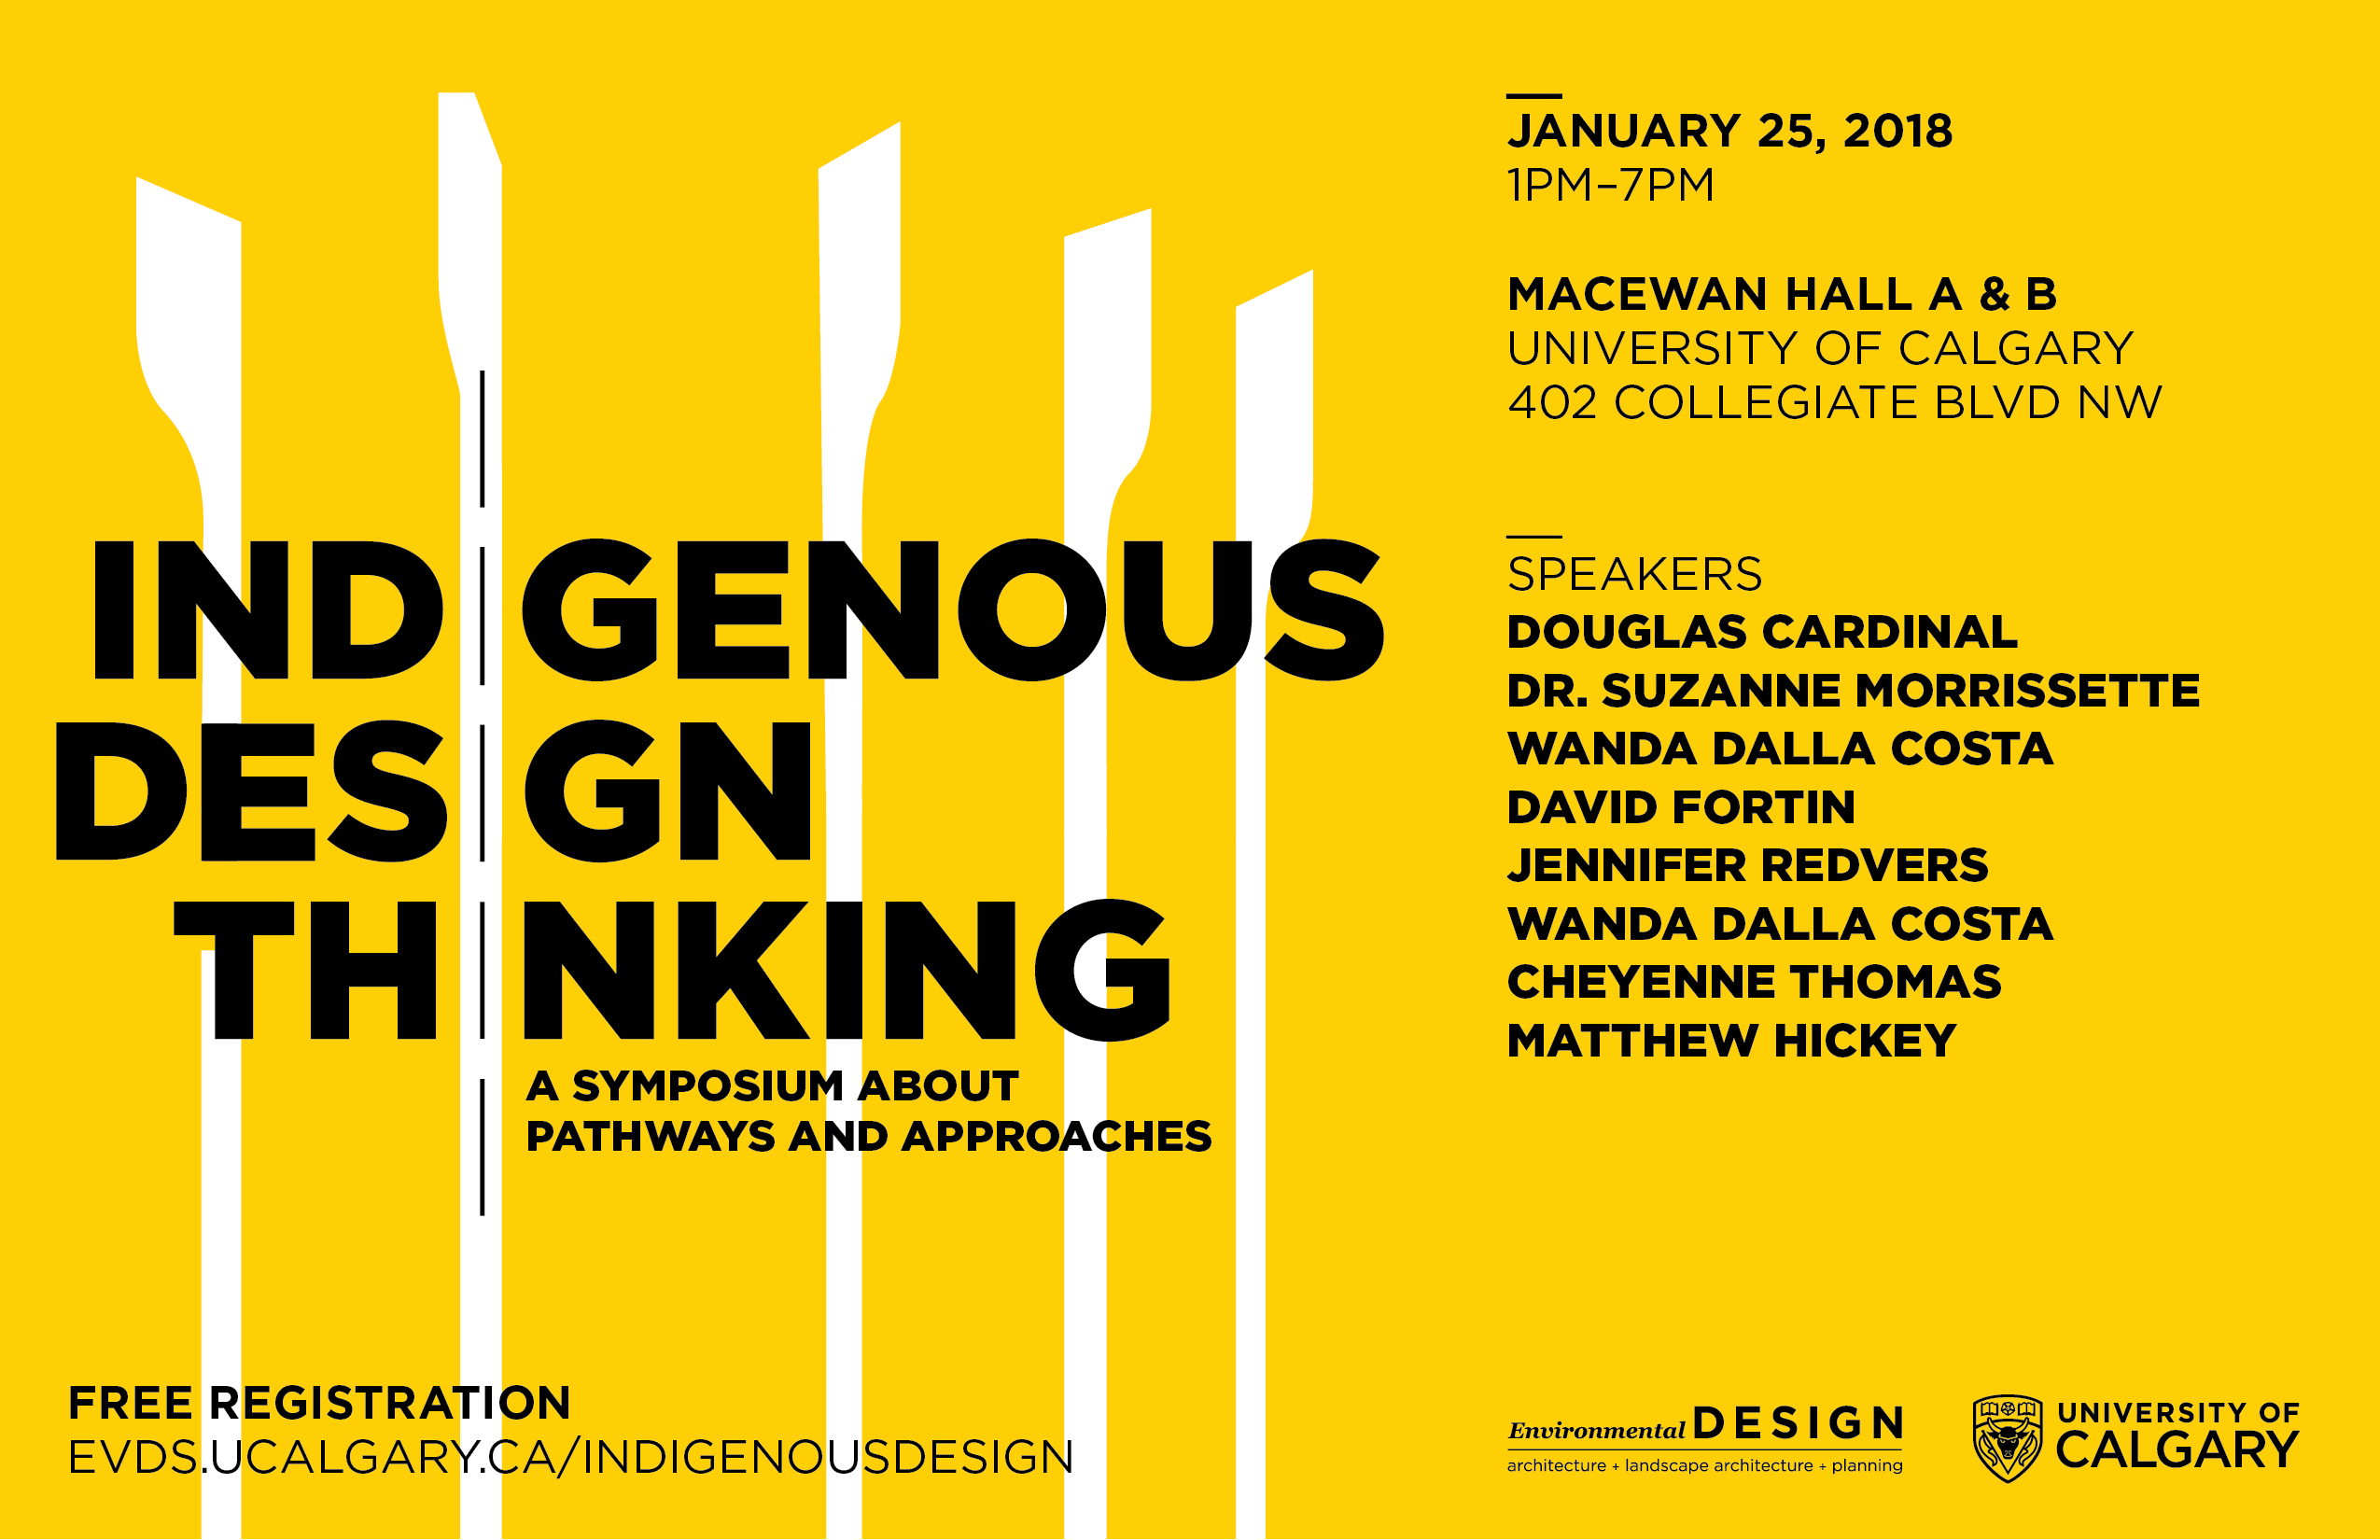 Indigenous Design Thinking